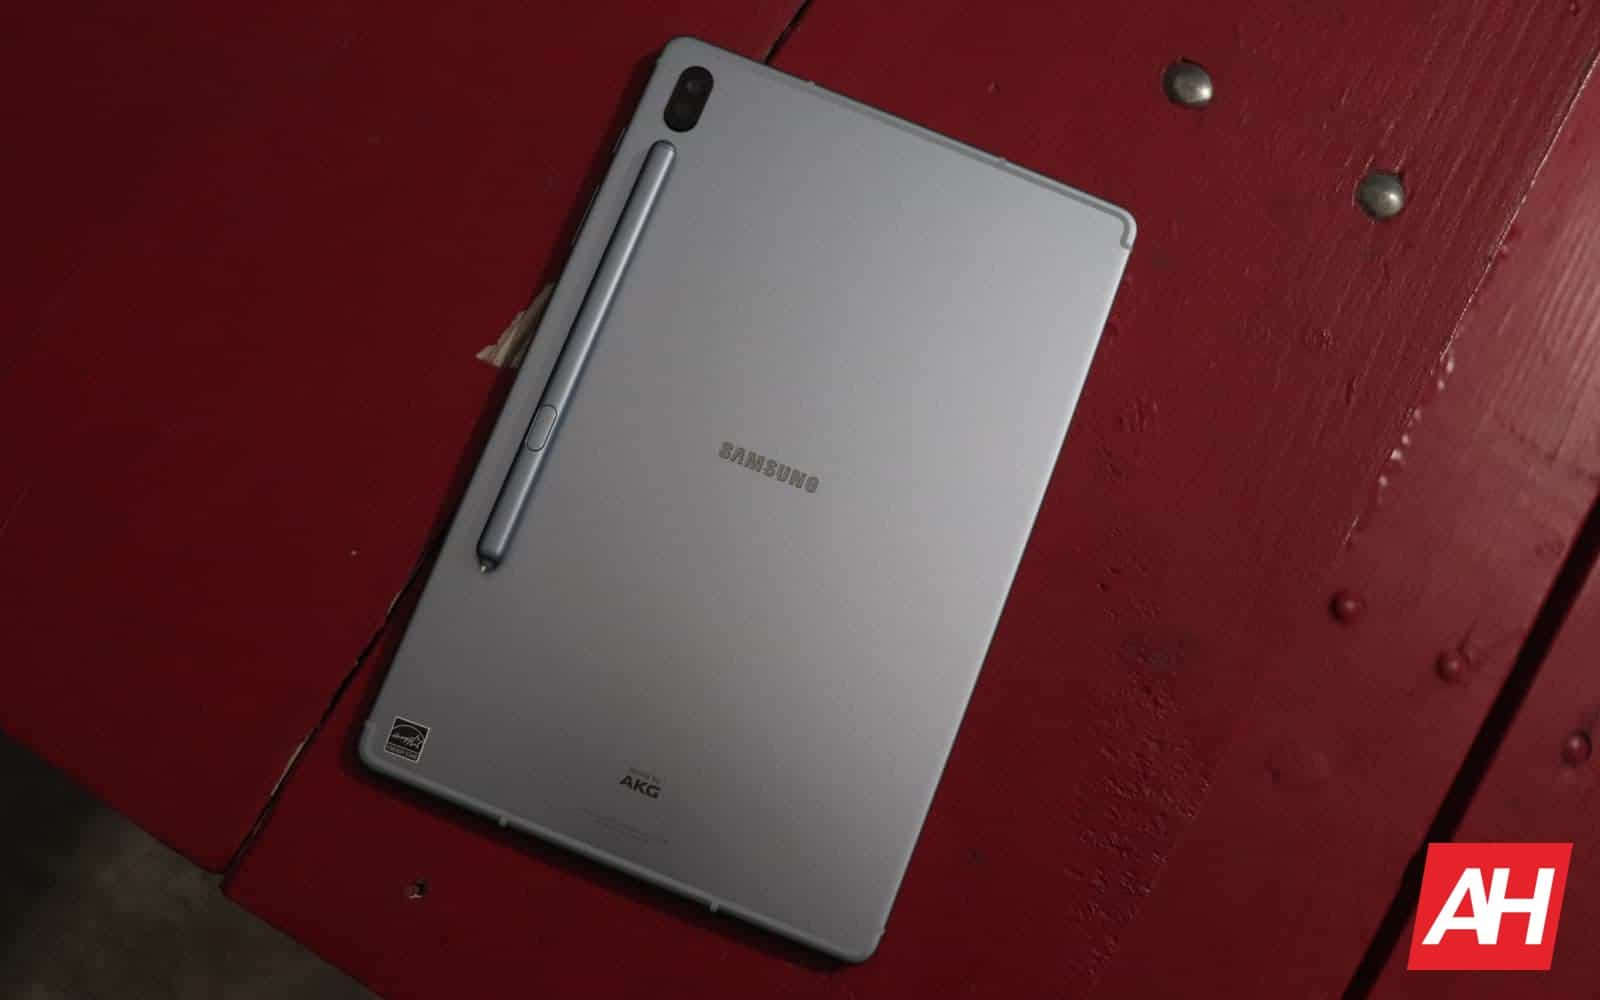 Samsung Galaxy Tab S6 Review 01 1 Design AH 2019